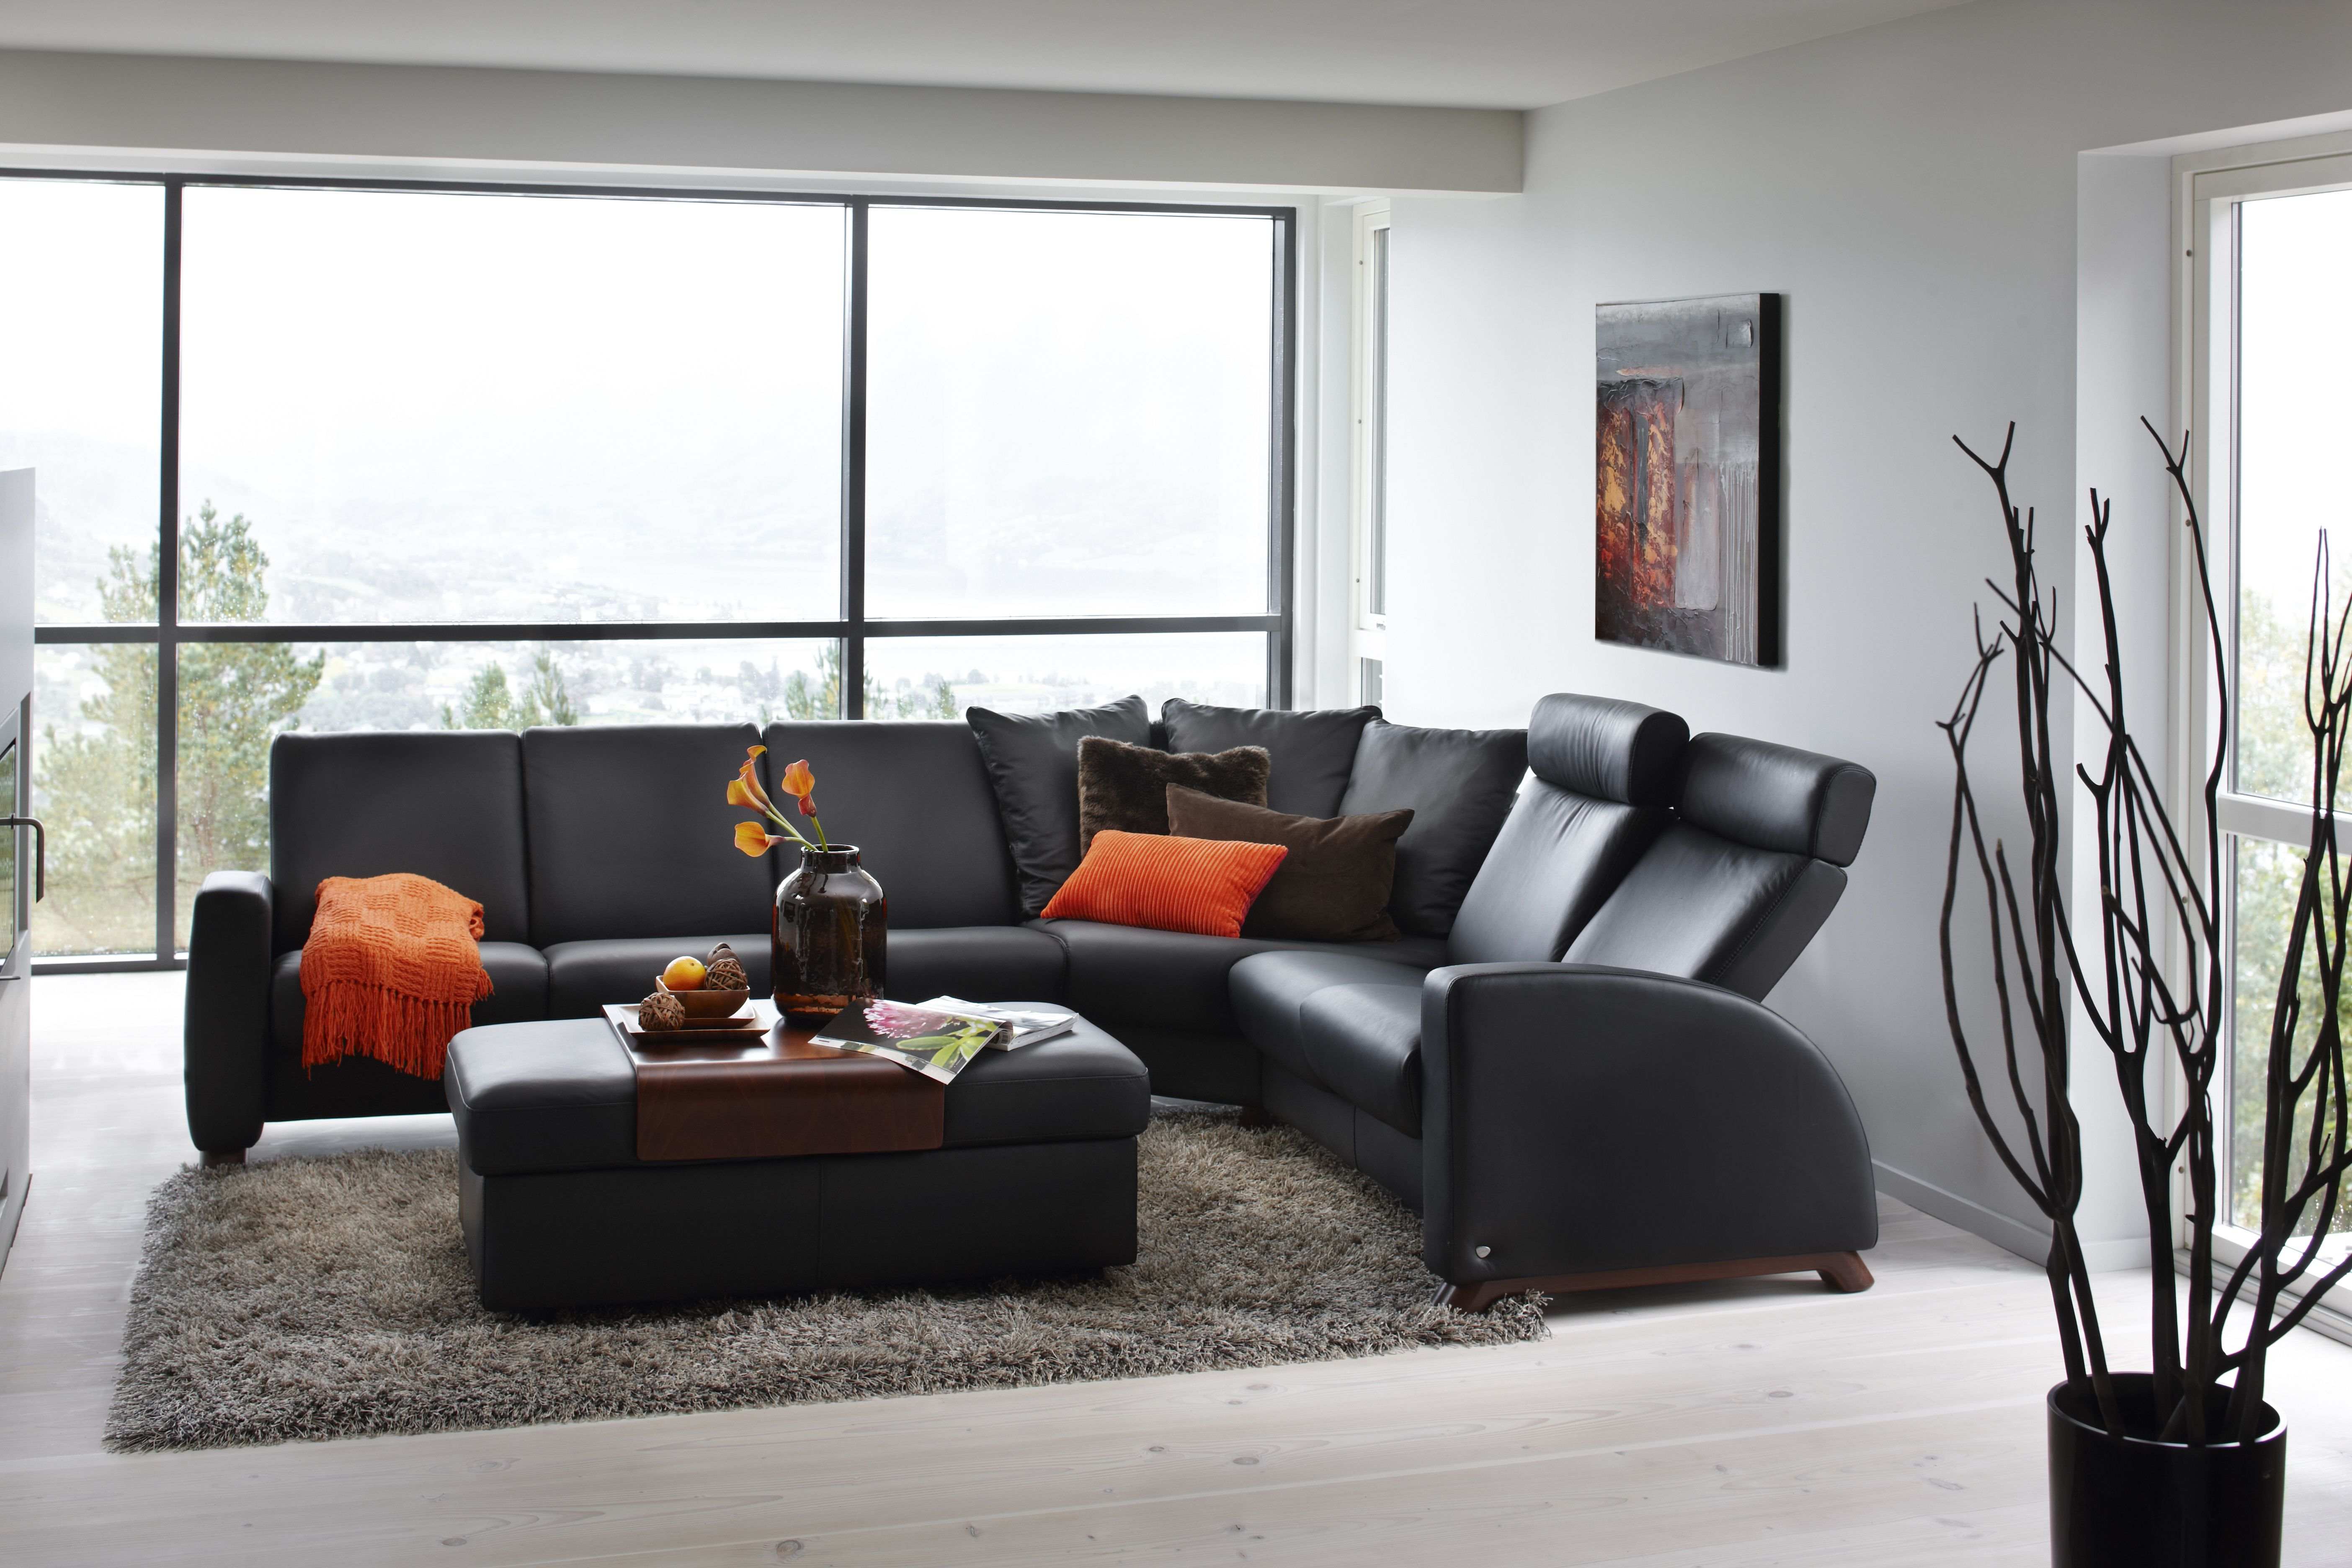 Stressless Kino Pops Of Clementine Stressless Stressless Furniture Reclining